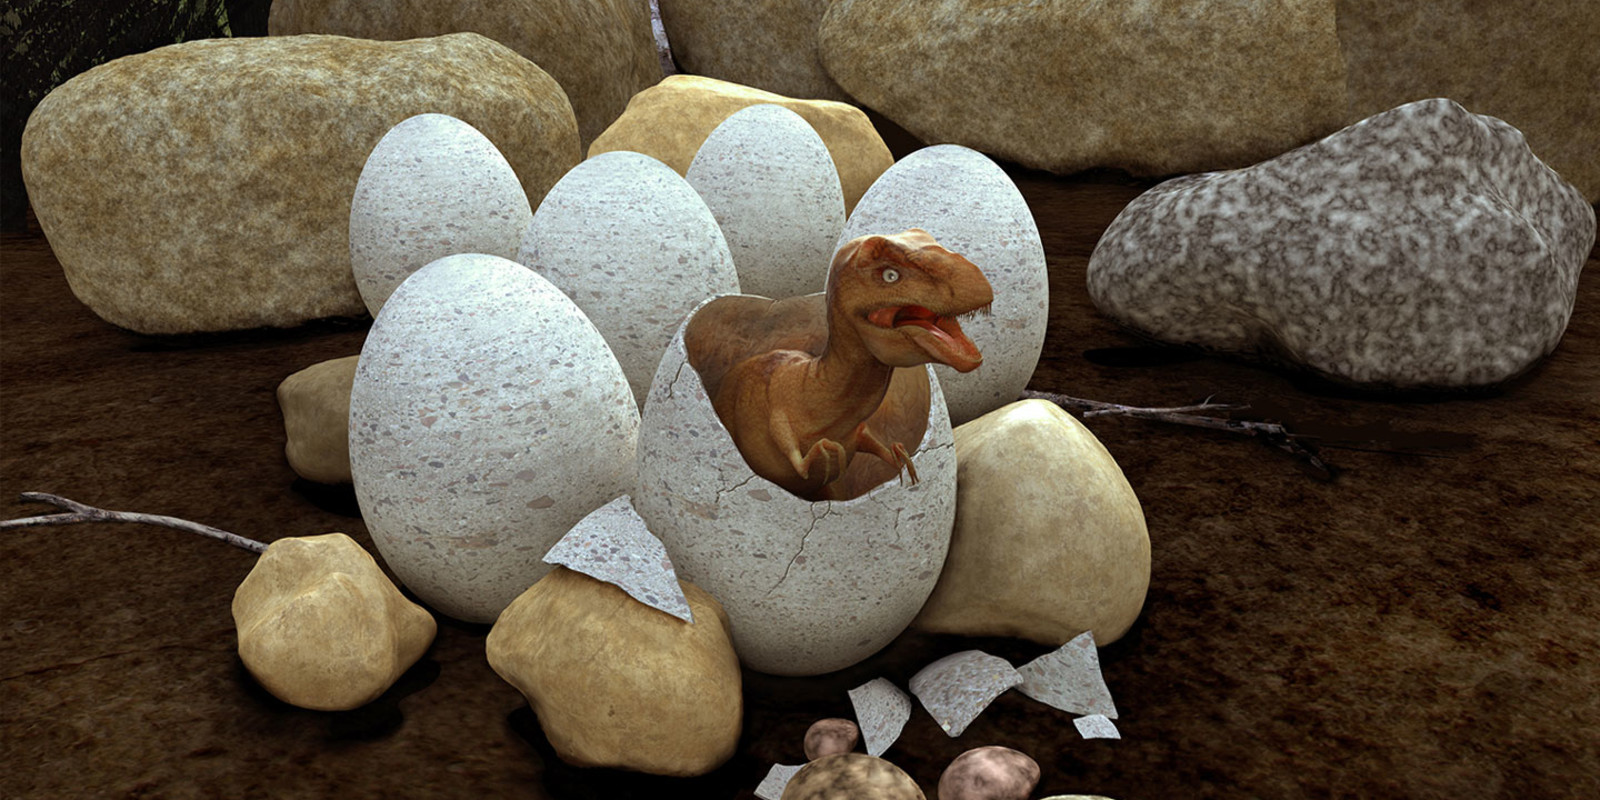 Female dinosaurs laid eggs up to 20 eggs at a time.